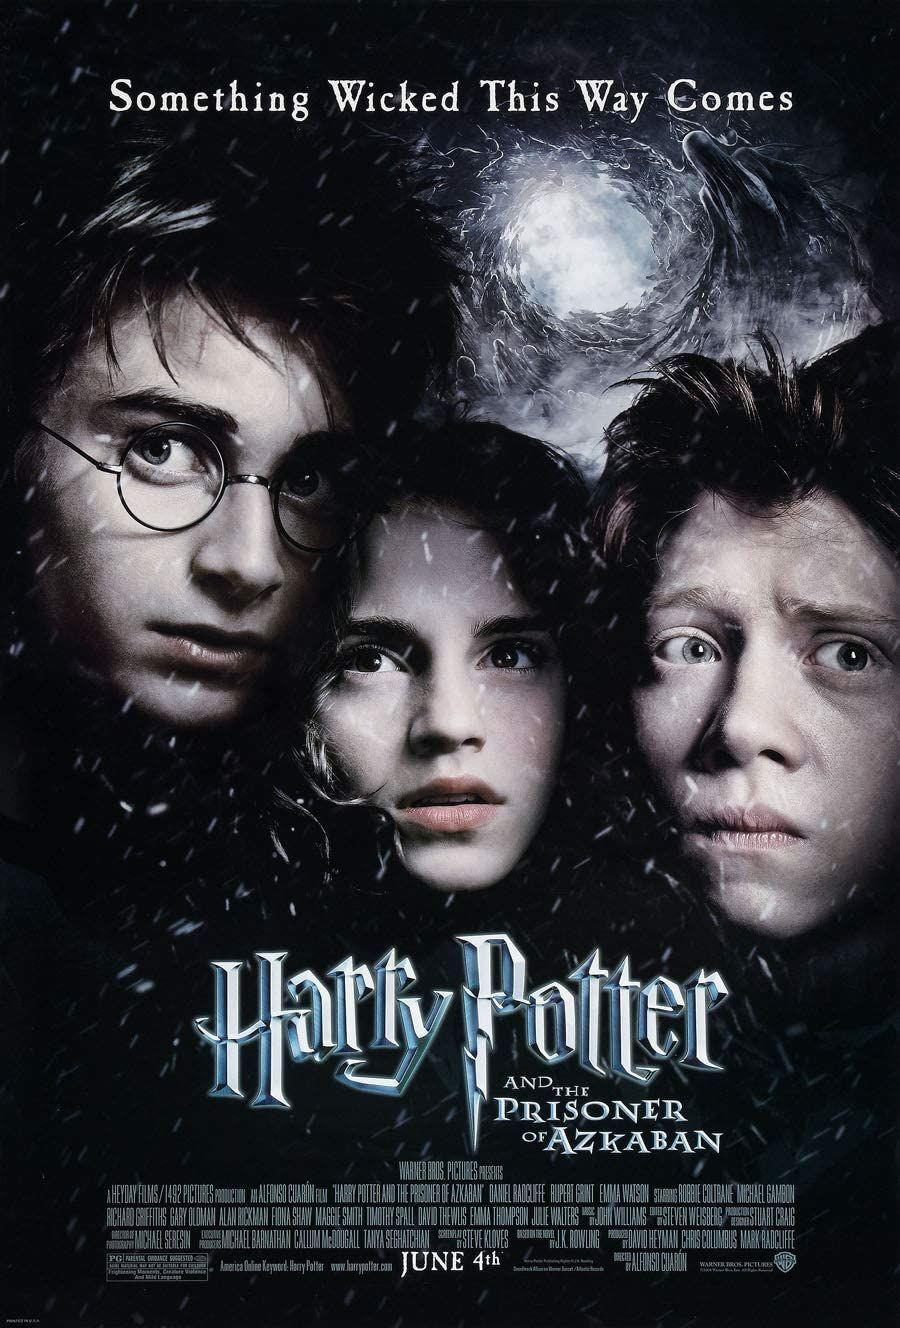 "<p>Harry, Ron, and Hermione are back at Hogwarts as teenagers, and this year they meet some new faces. Harry must thwart off the soul-sucking Dementors with the help of his new Defense Against the Dark Arts professor Remus Lupin. But that's not even the worst foe of the year — escaped prisoner Sirius Black, who poses a threat to Harry, is thought to be at Hogwarts. Throughout the year, Harry learns more about his father's past and how the people we least expect play a great role in our lives. </p><p><a class=""link rapid-noclick-resp"" href=""https://www.amazon.com/gp/video/detail/B00BUCH546/ref=atv_dp_b00_det_c_UTPsmN_1_1?tag=syn-yahoo-20&ascsubtag=%5Bartid%7C10055.g.33625559%5Bsrc%7Cyahoo-us"" rel=""nofollow noopener"" target=""_blank"" data-ylk=""slk:WATCH NOW"">WATCH NOW</a></p>"